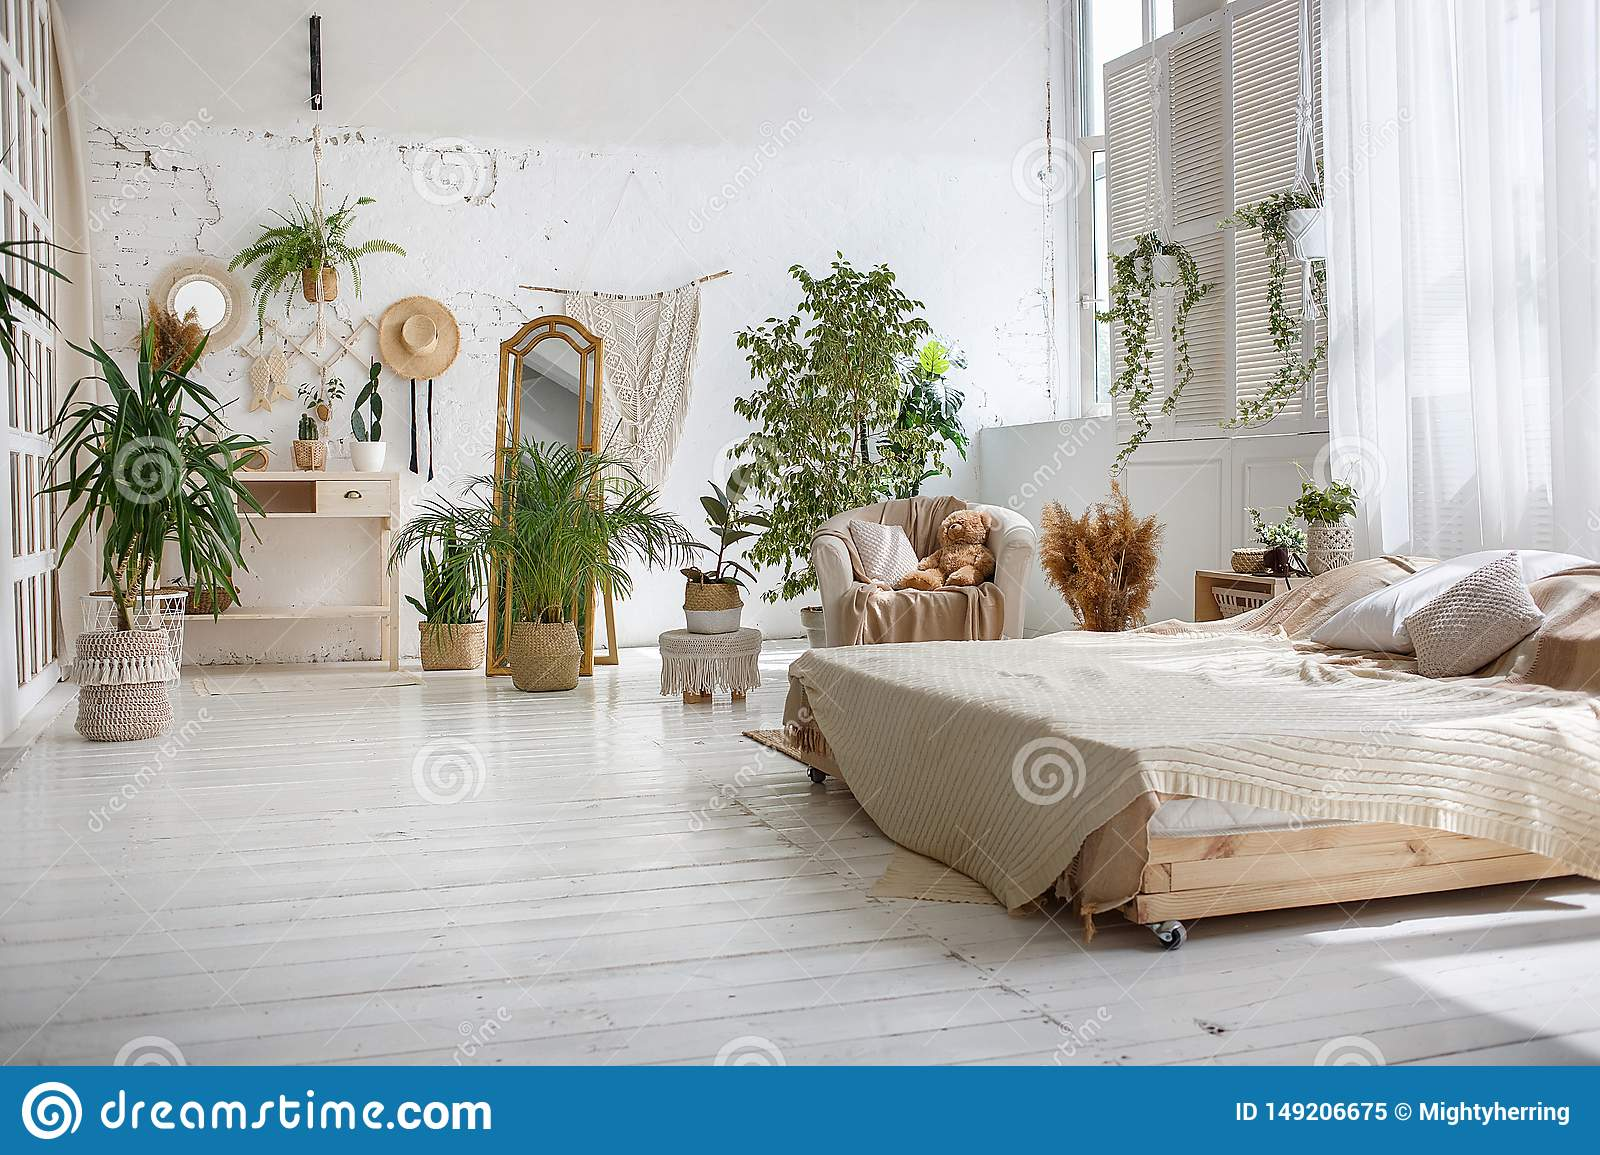 Stylish Bright Loft Cozy Room With Double Bed Armchair Green Plants Mirror White Brick Walls And Wooden Floor Stock Image Image Of Cozy Design 149206675